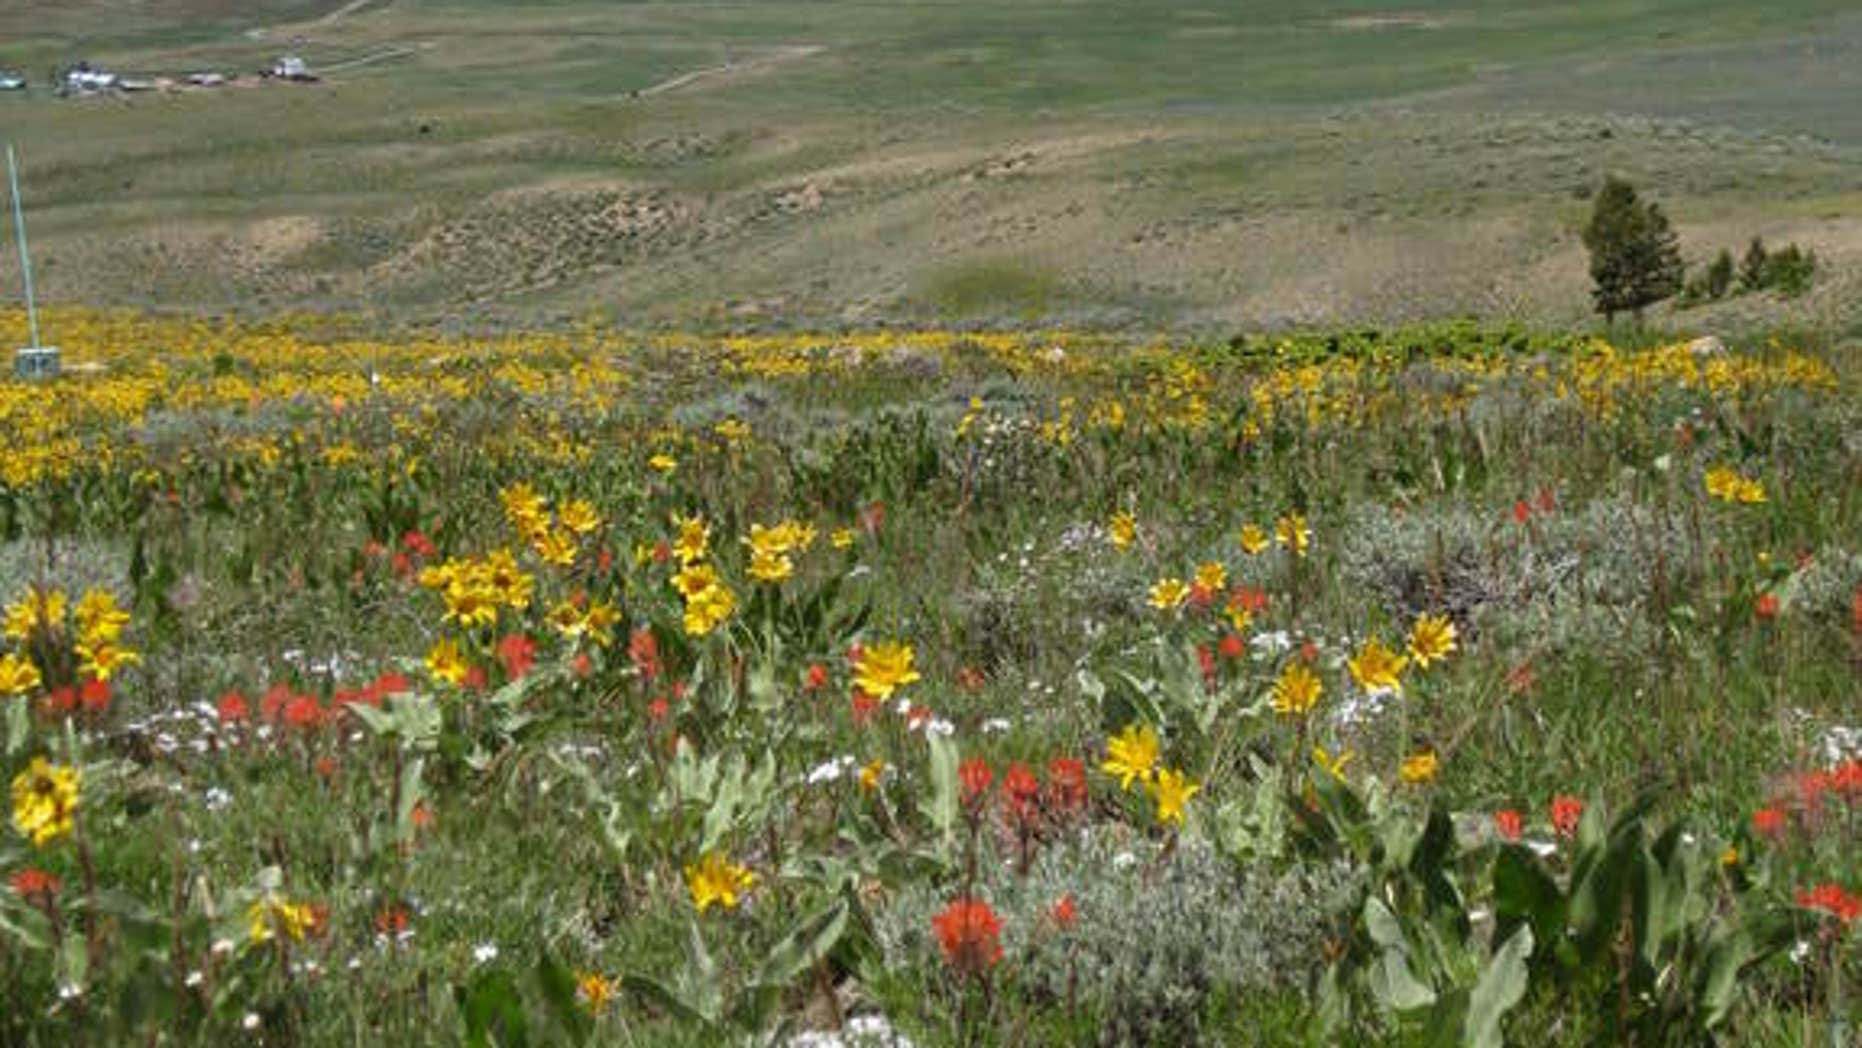 The Rocky Mountain meadow where researchers studied animal, plant and insect interactions.